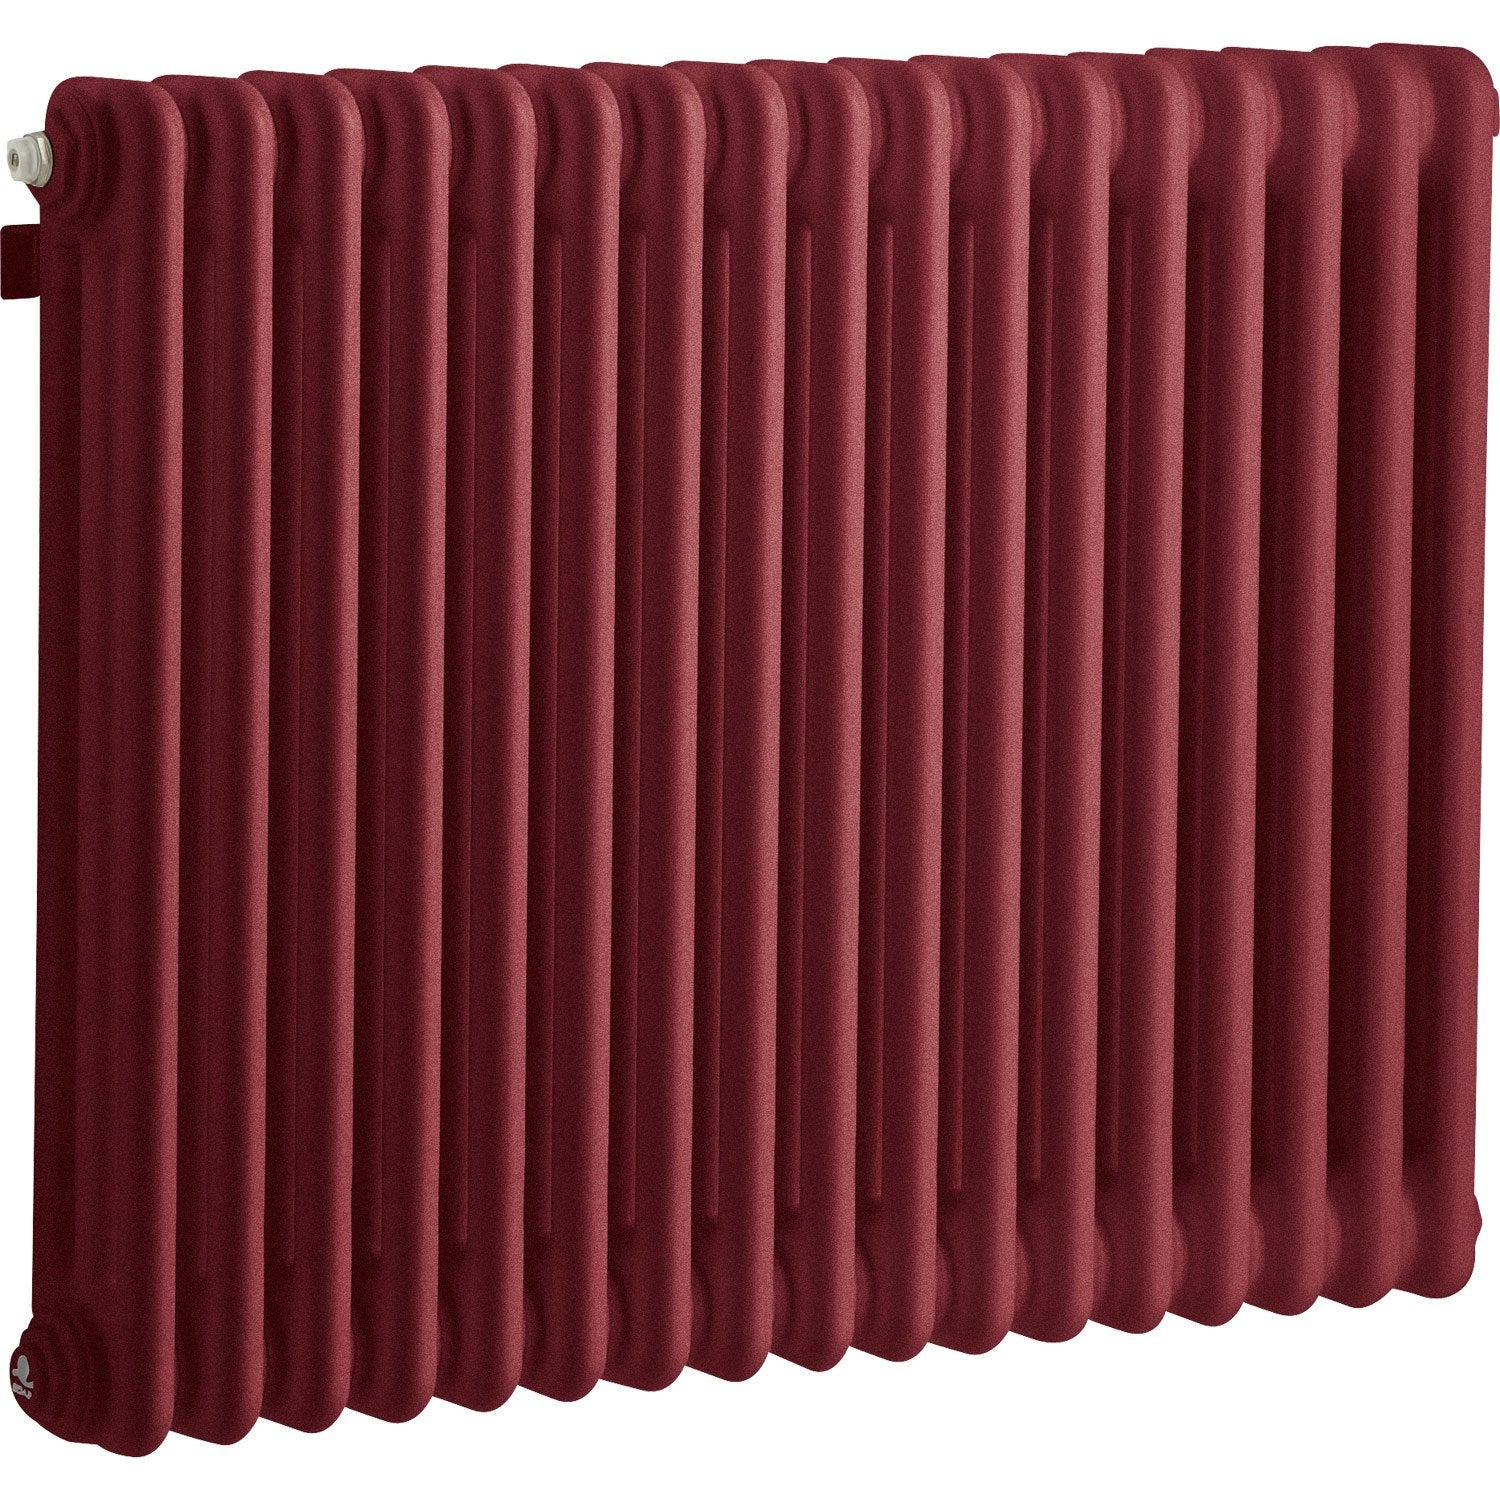 radiateur chauffage central tesi rouge cm 1030 w leroy merlin. Black Bedroom Furniture Sets. Home Design Ideas